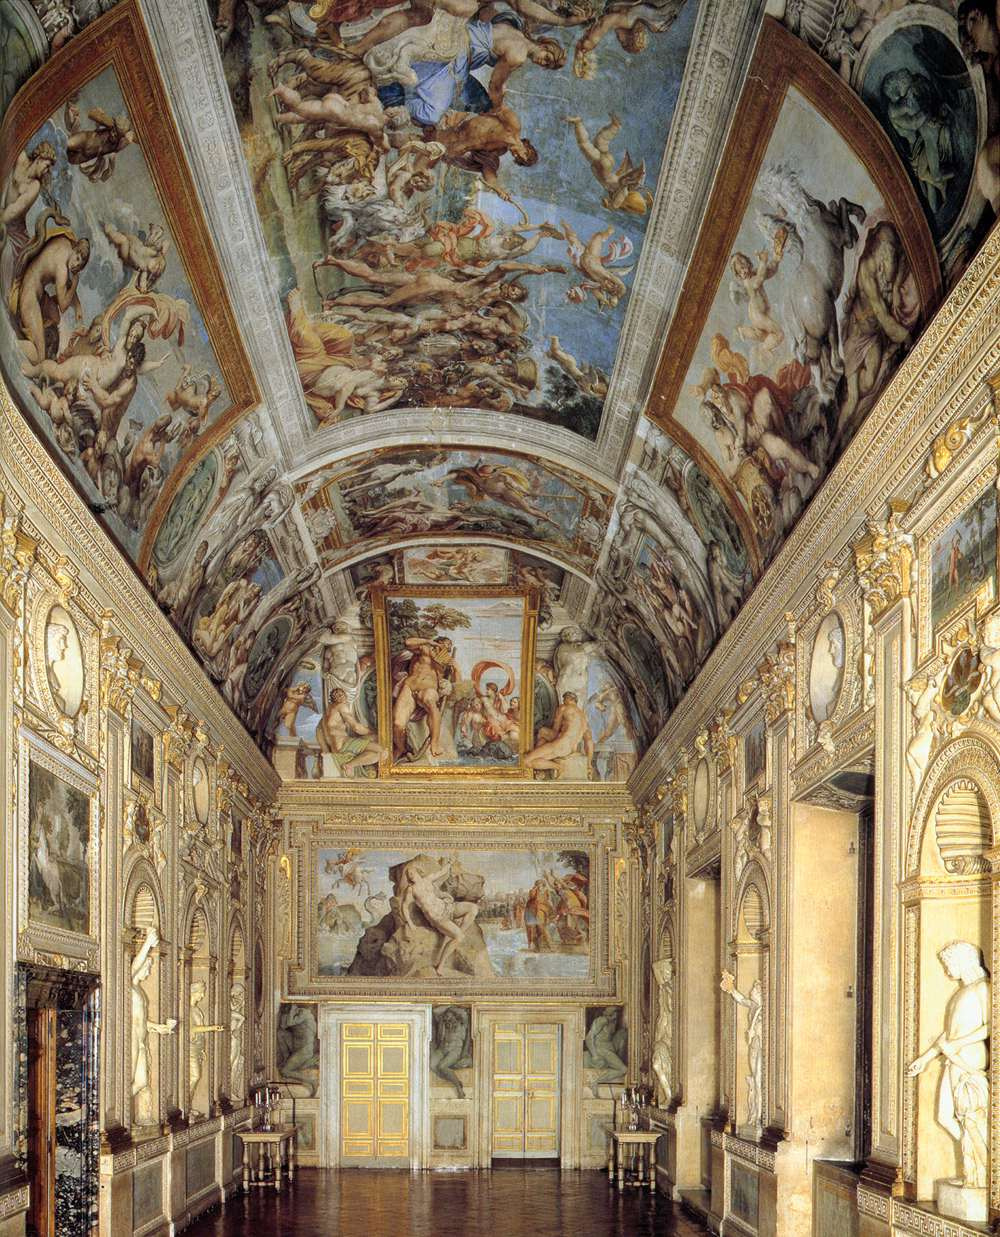 Annibale Carracci. Murals of the Gallery Farnese